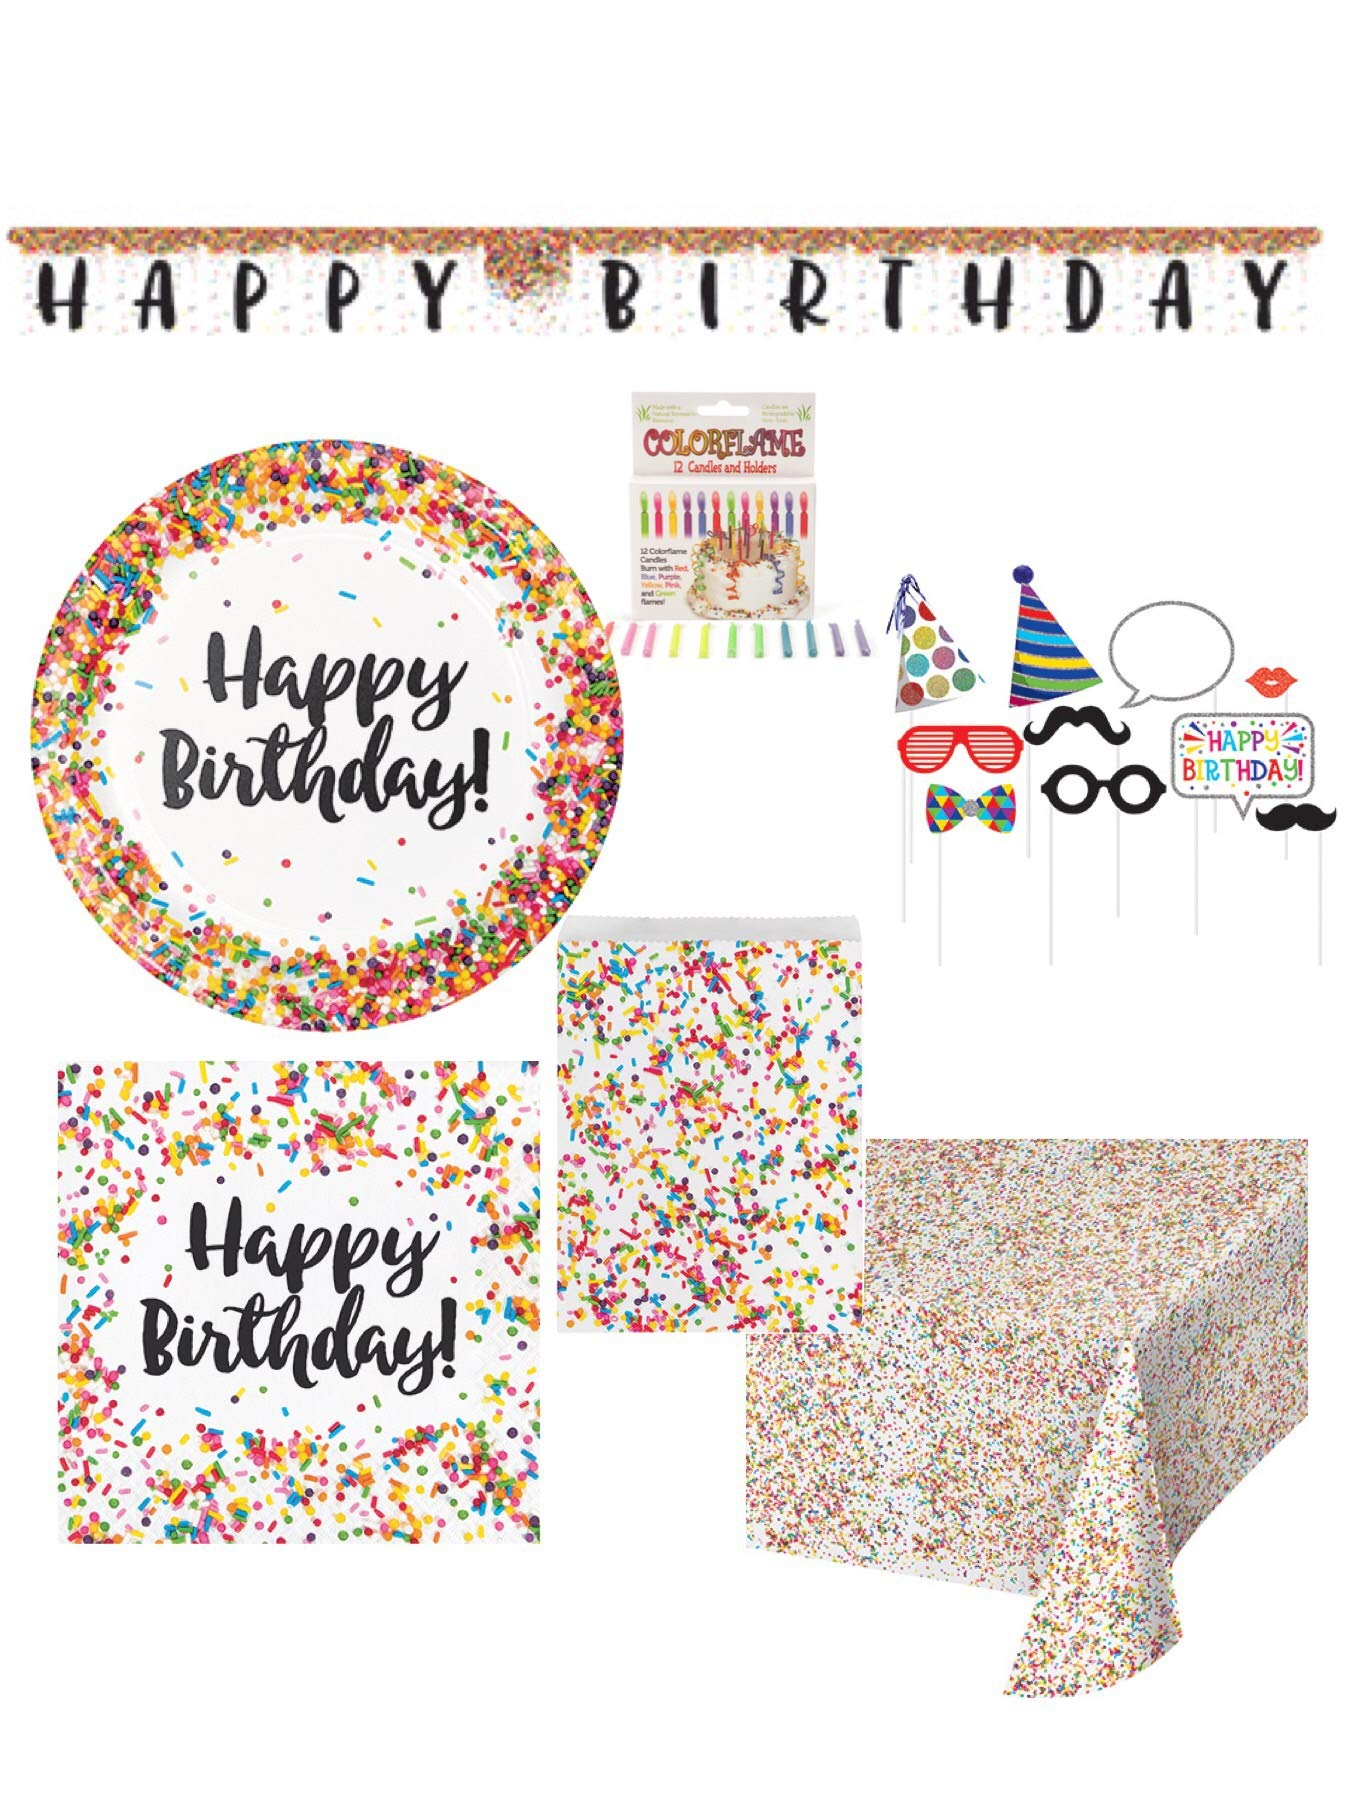 Olive Occasions Confetti Sprinkles Happy Birthday Disposable Paper Party Supplies Serves 16 Dinner Plates, 16 Napkins, Banner, Table Cover, Loot Bags, Photo Props, Candles, Grandma Olive's Re by Olive Occasions